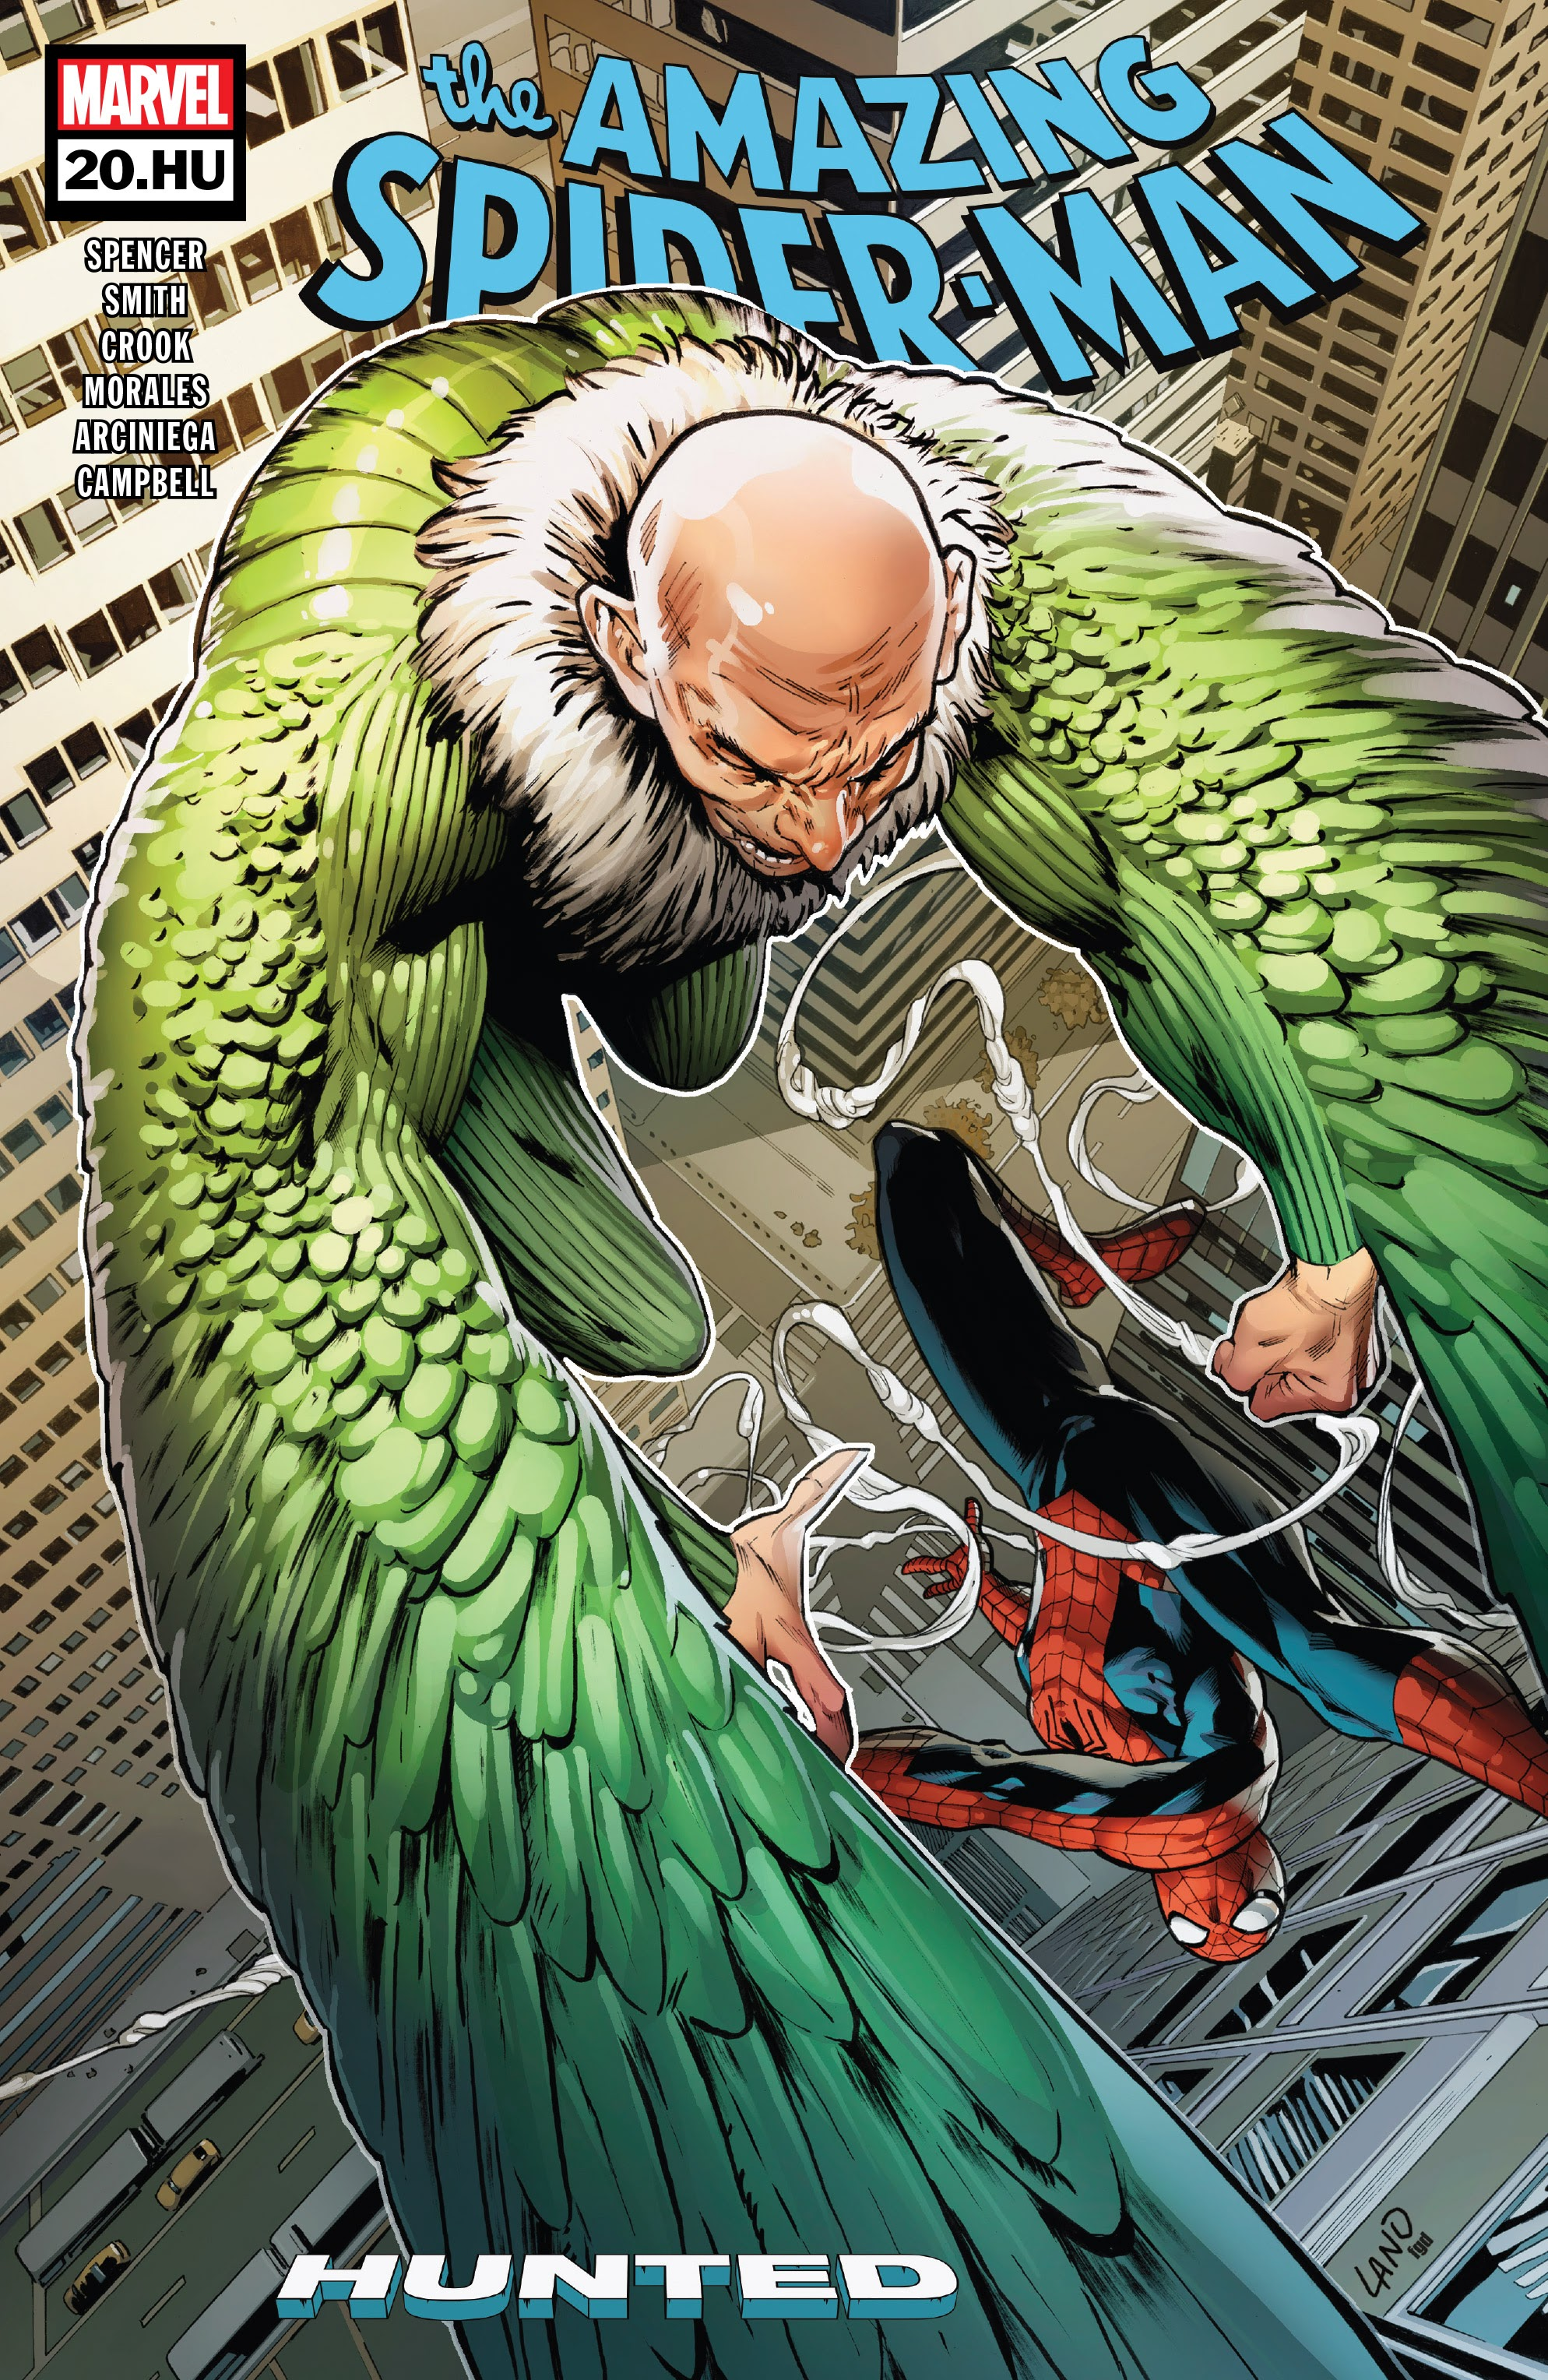 Read online The Amazing Spider-Man (2018) comic -  Issue #20.HU - 1